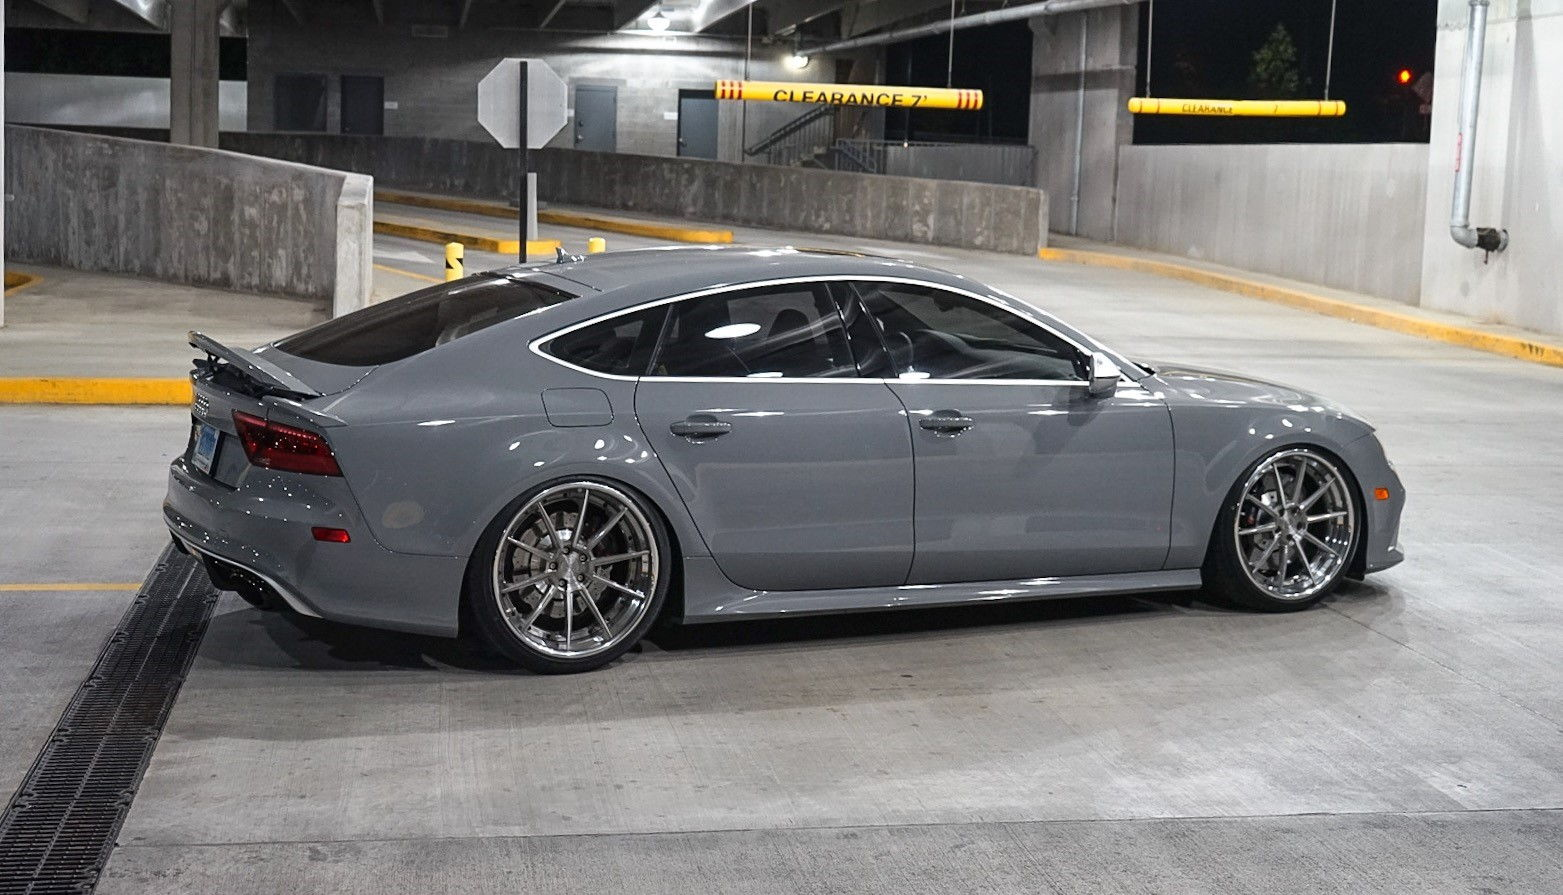 Audi Rs7 2014 For Sale >> Nardo Grey Rs7! - 6SpeedOnline - Porsche Forum and Luxury Car Resource